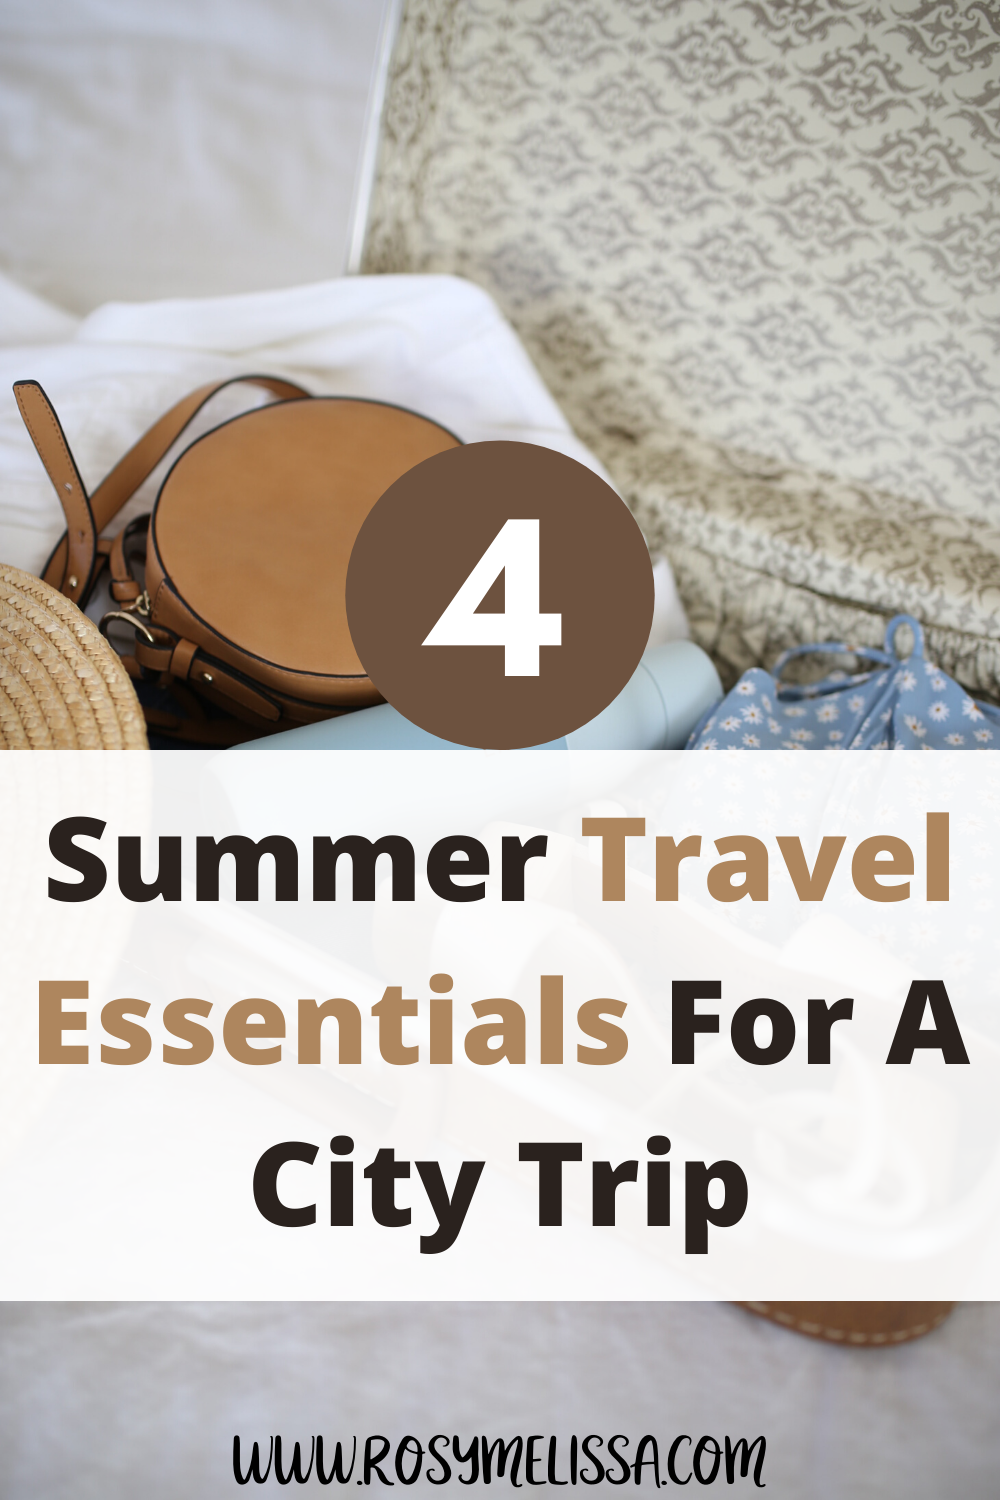 4 ultimate summer travel essentials for a city trip, packing tips, packing guide, summer city